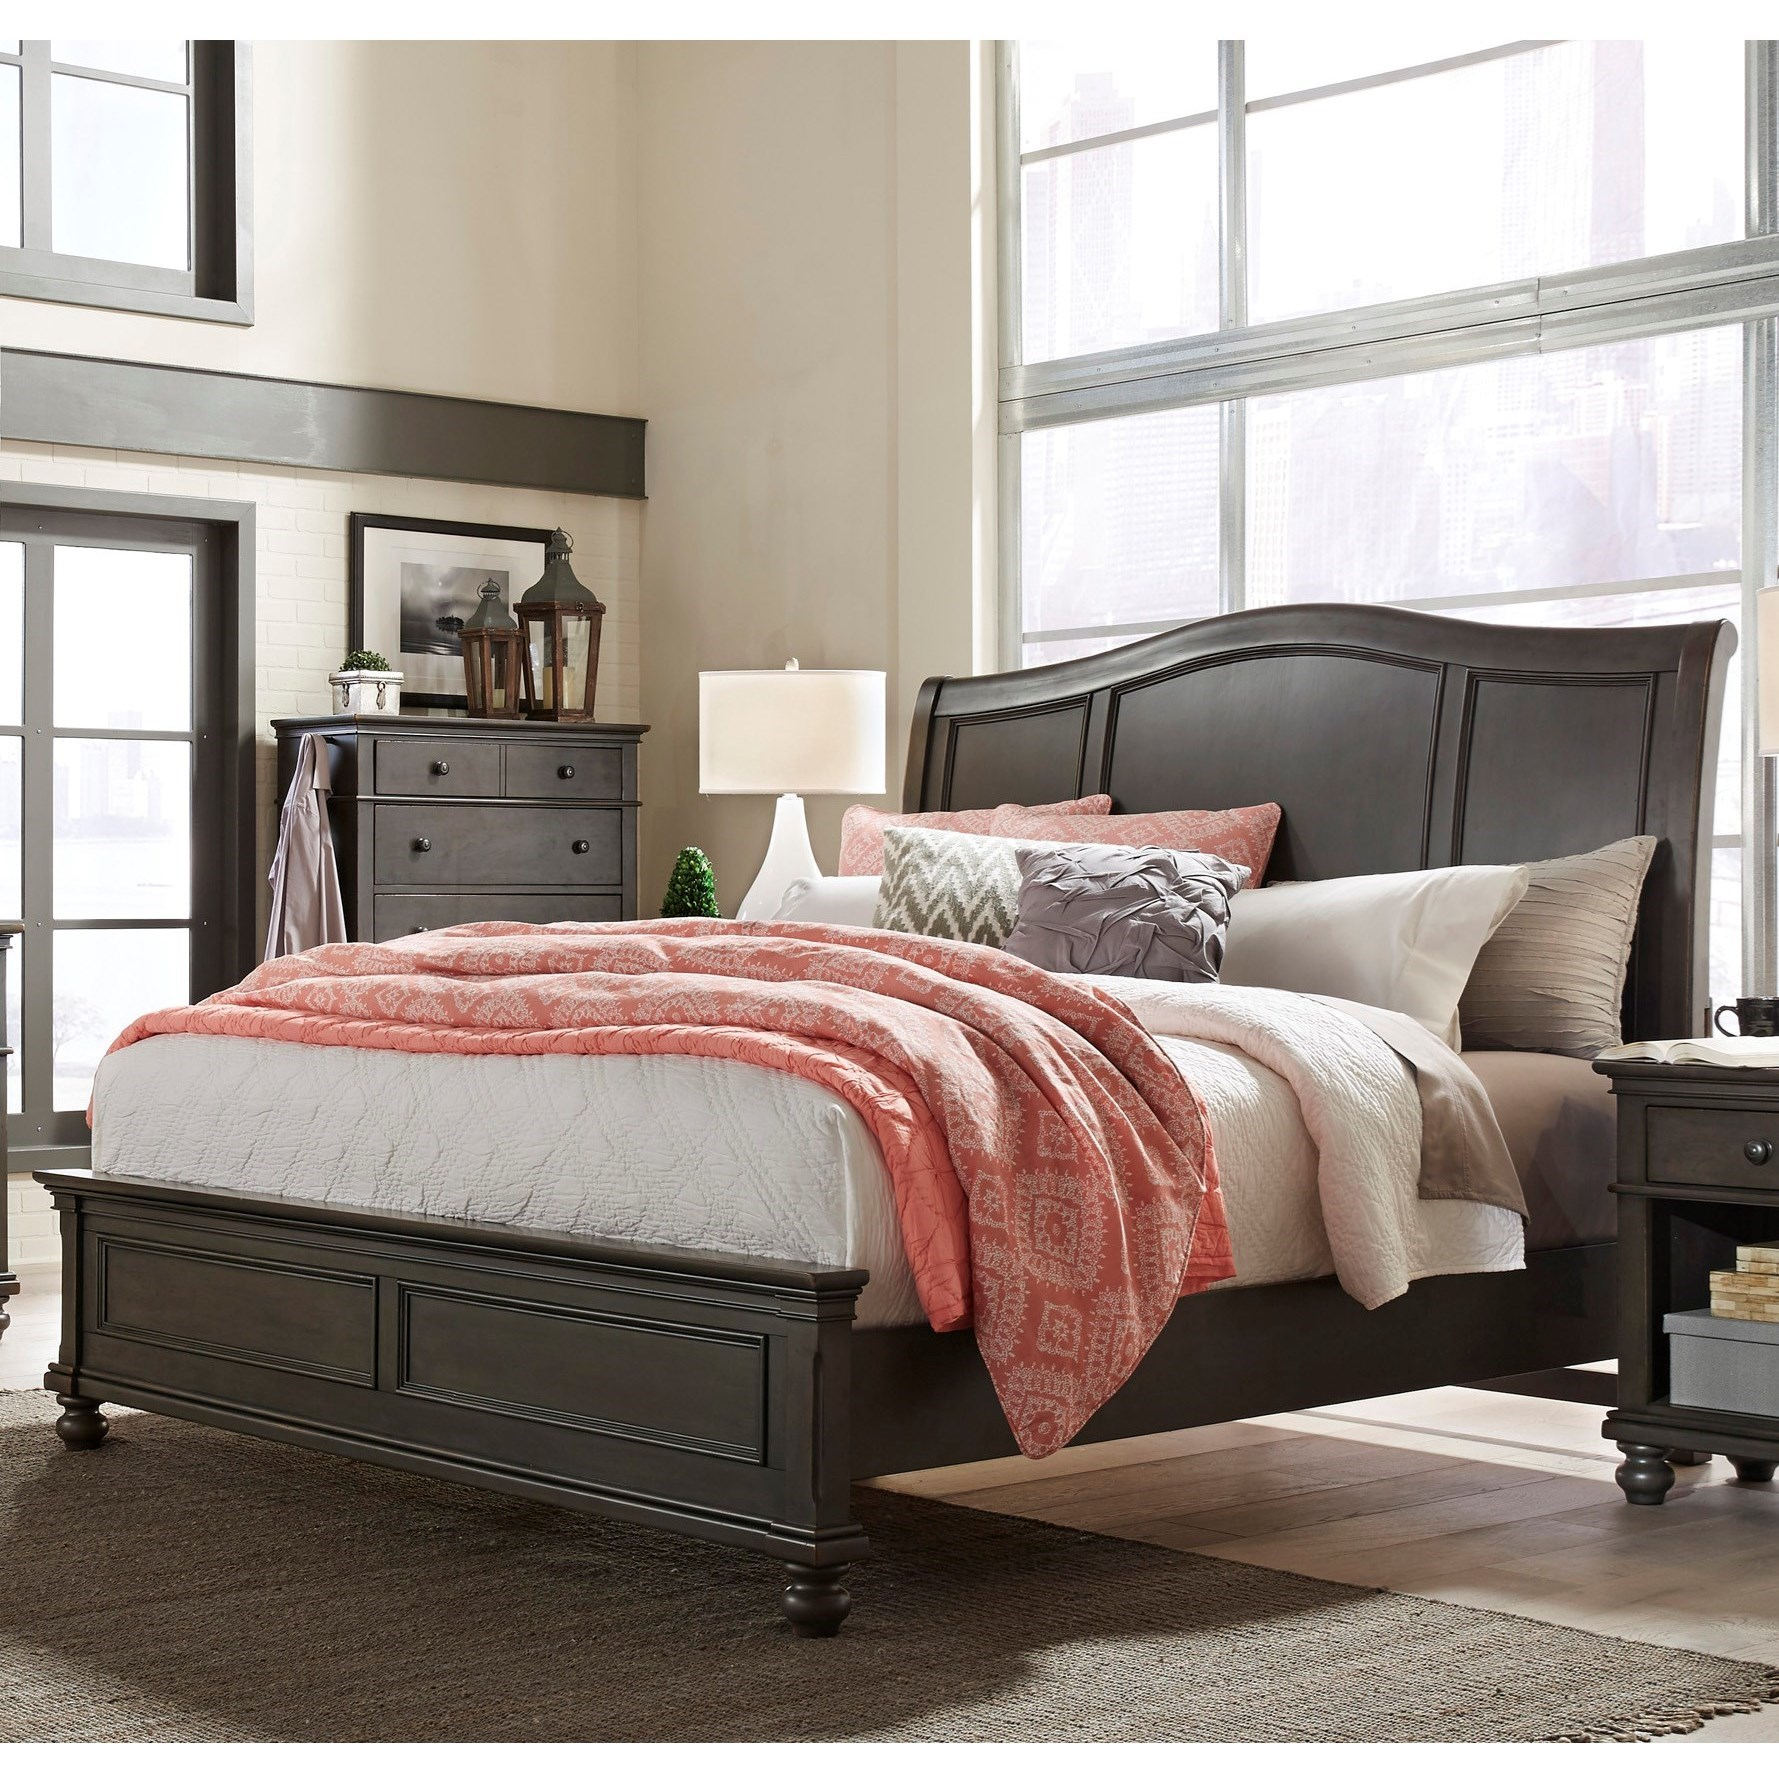 Aspenhome Oxford Queen Sleigh Bed - Item Number: I07-400+403+402-PEP